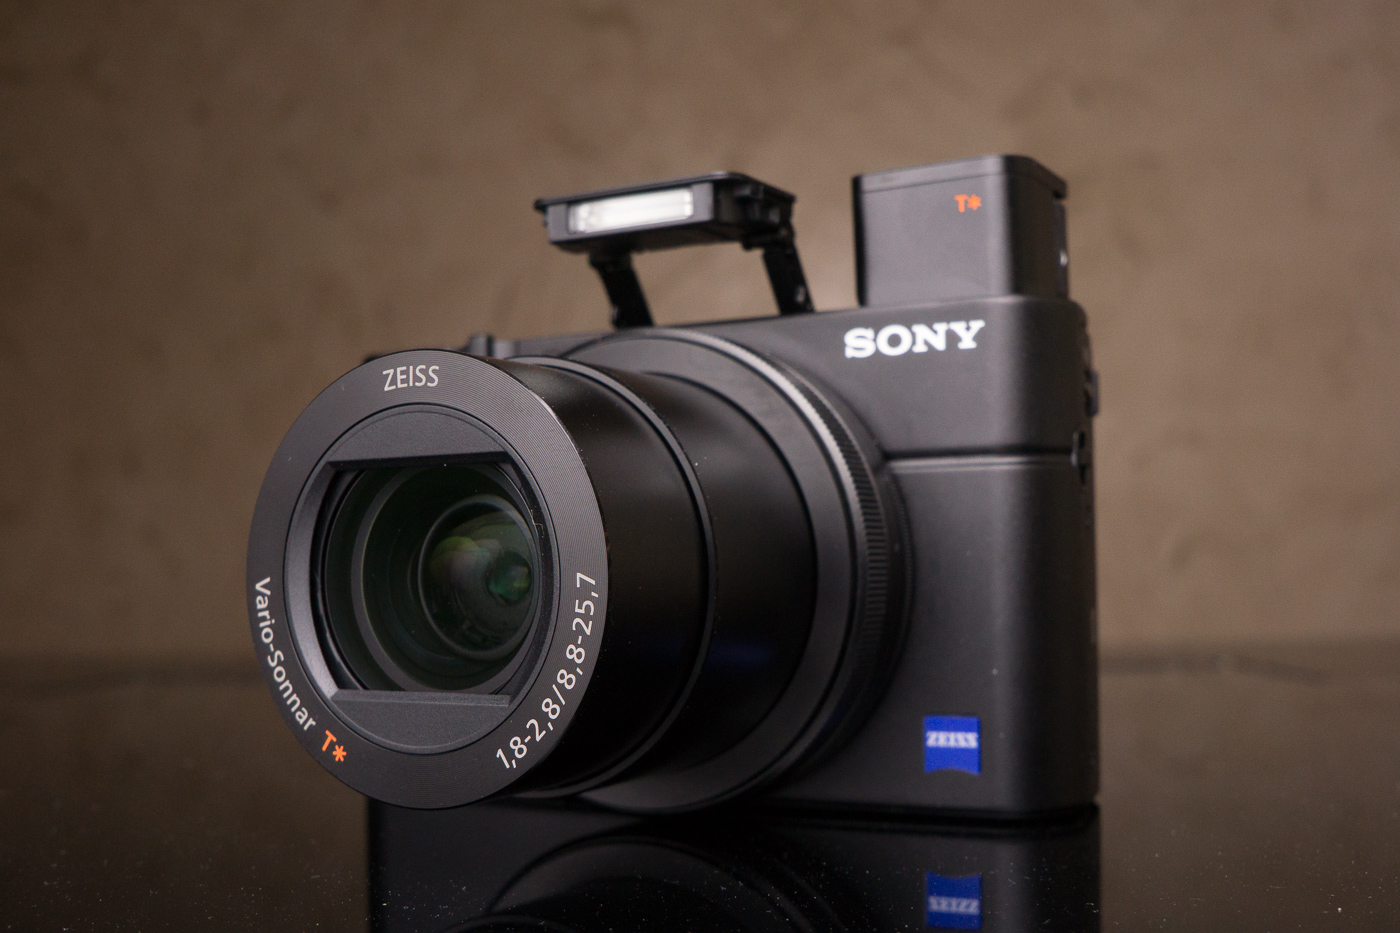 sony rx100 iii review a stylish and practical travel camera that produces pro looking photos. Black Bedroom Furniture Sets. Home Design Ideas